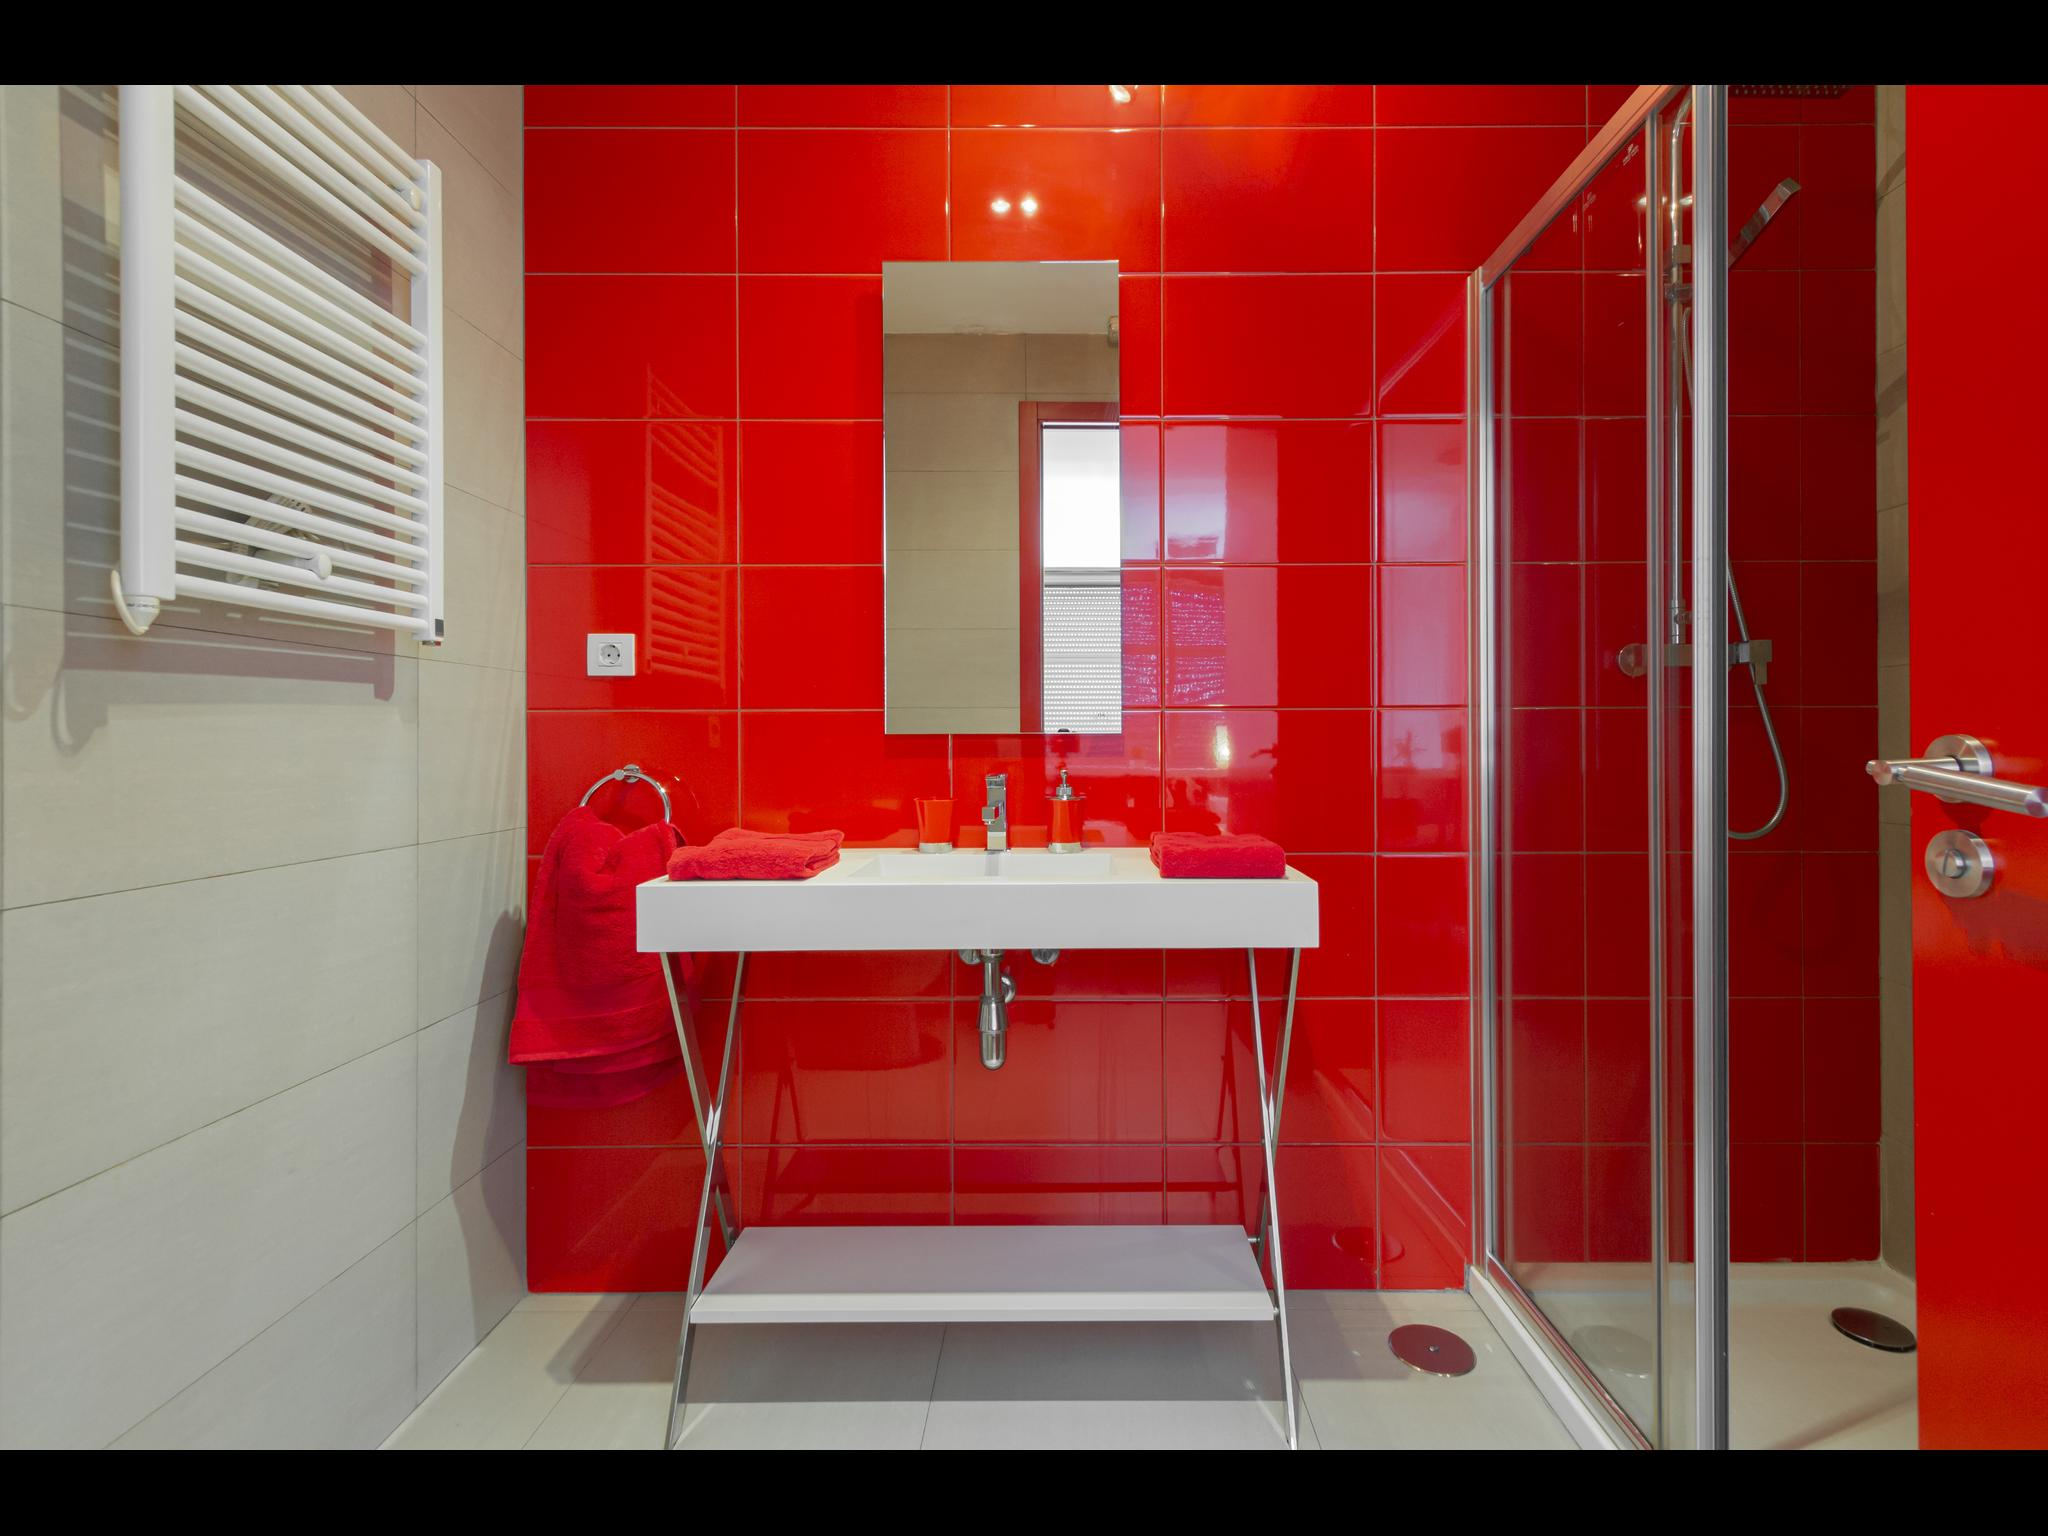 Fuencarral - Entry ready apartment in Madrid